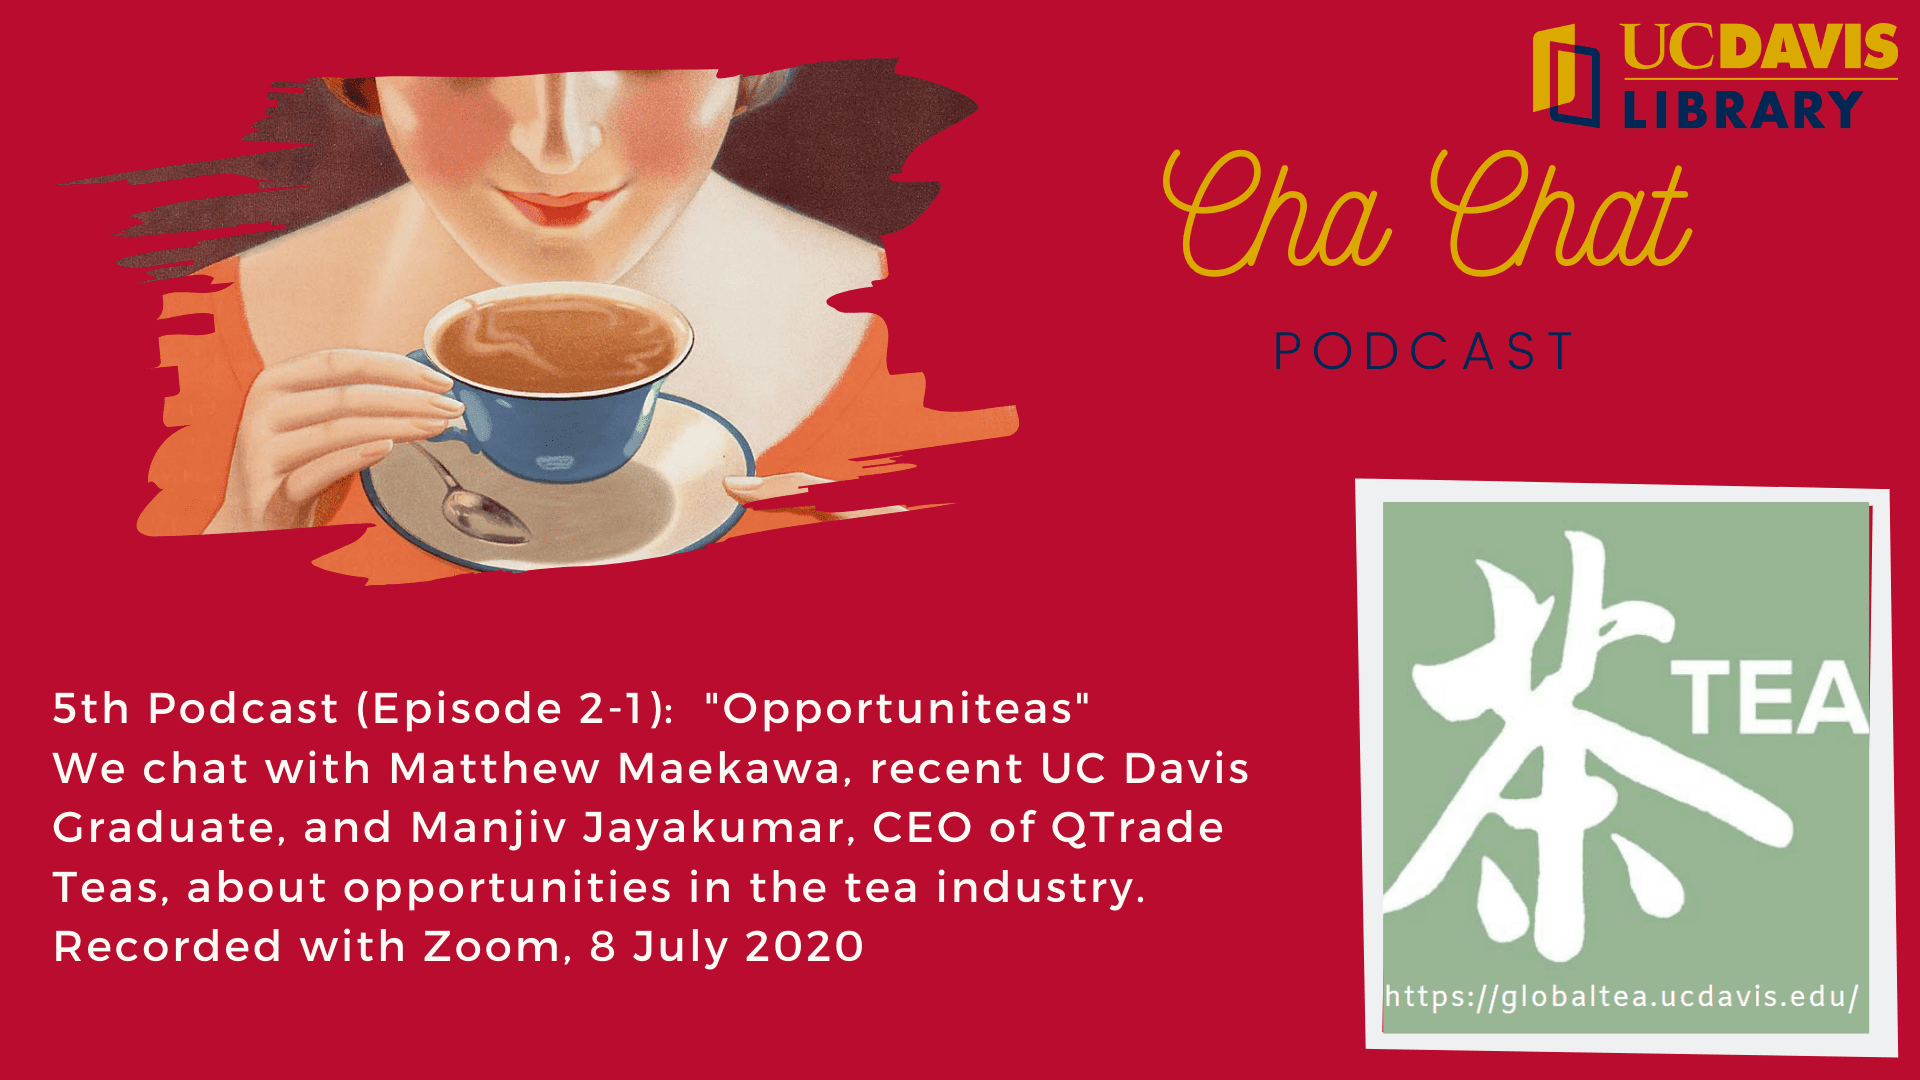 cha chat fifth podcast